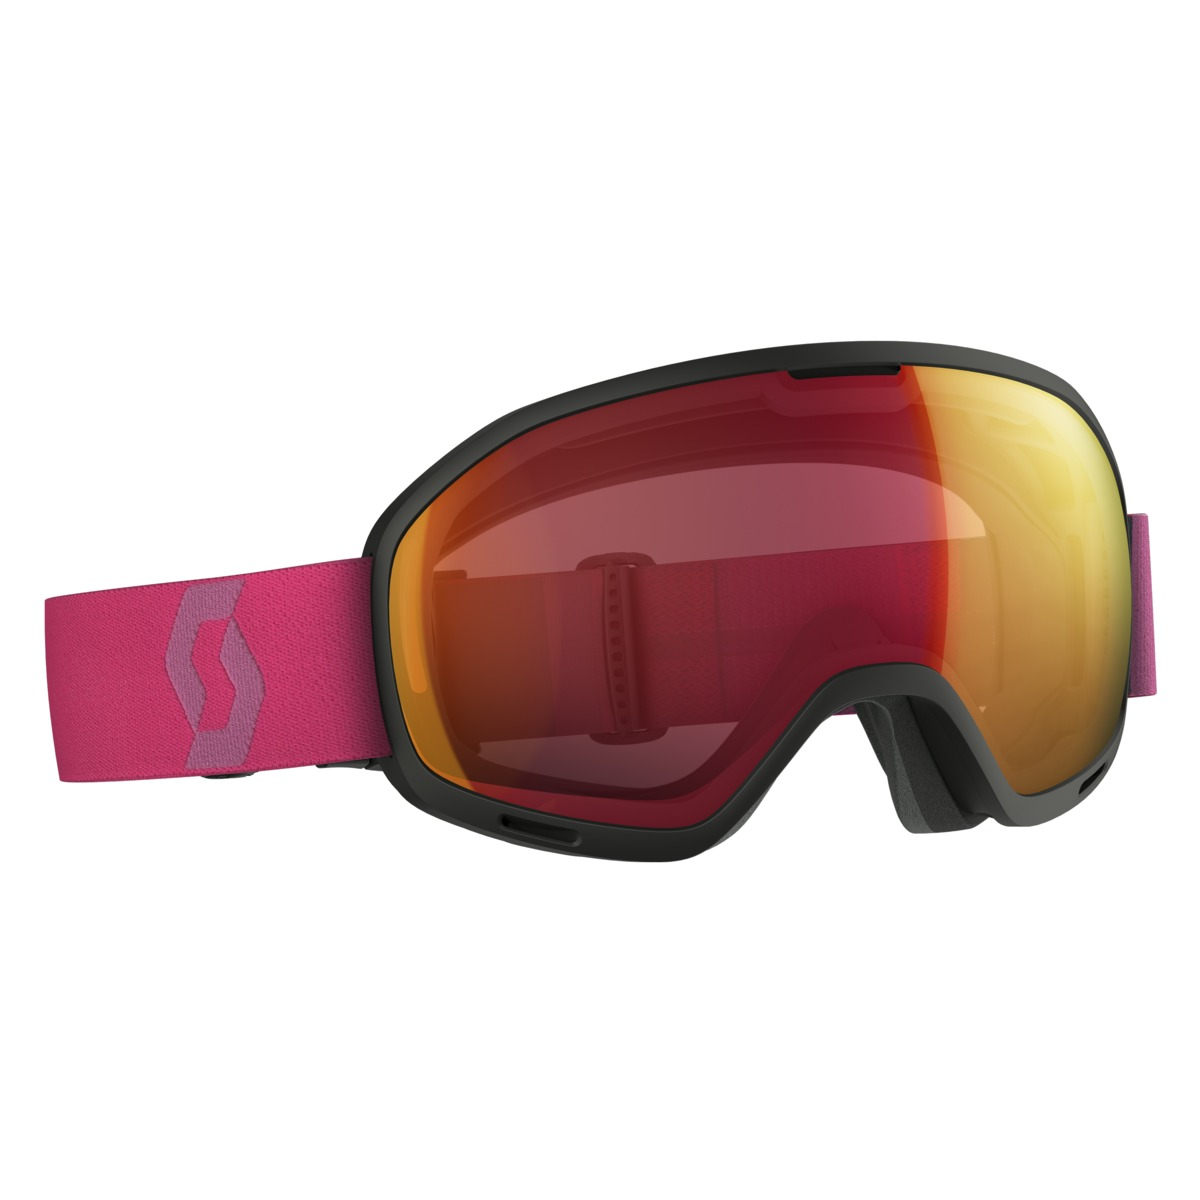 2017-18 Scott Unlimited II OTG Ski Goggle Illuminator Cat 1 Lens black/berry